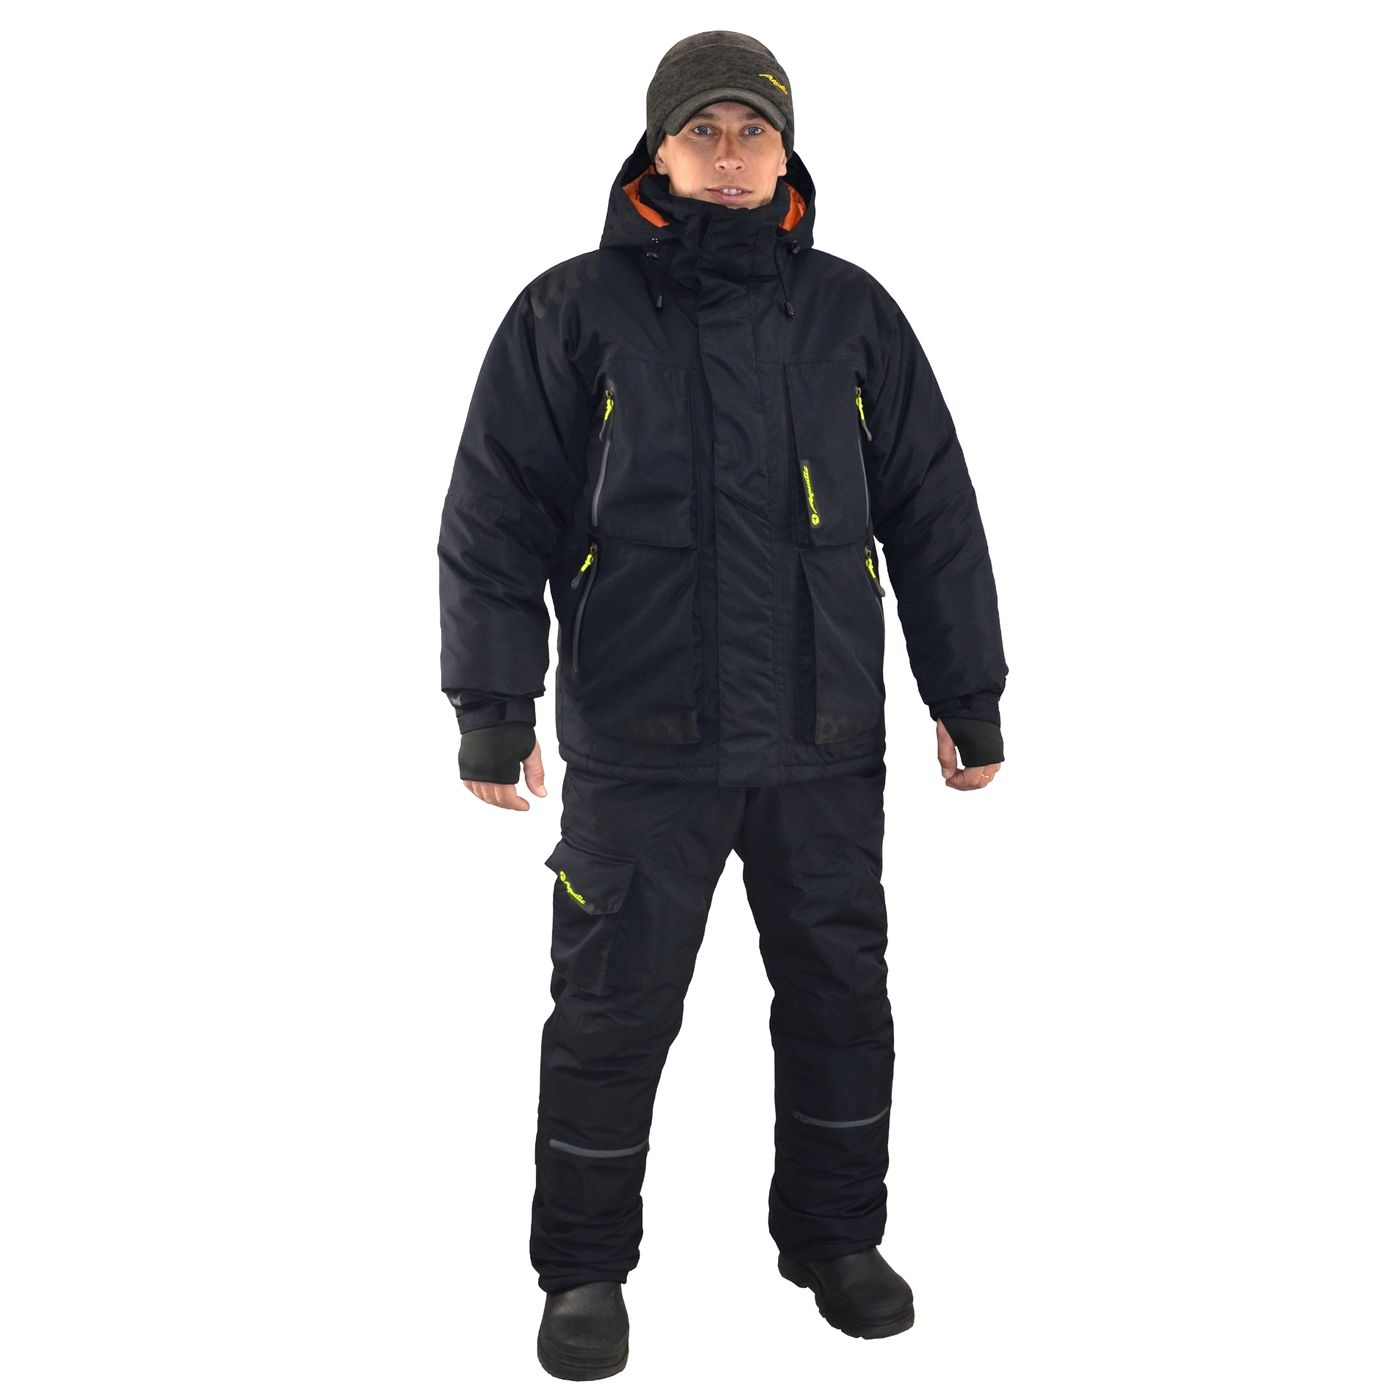 Winter Membrane Suit Aquatic K-14h K-14h 46-48